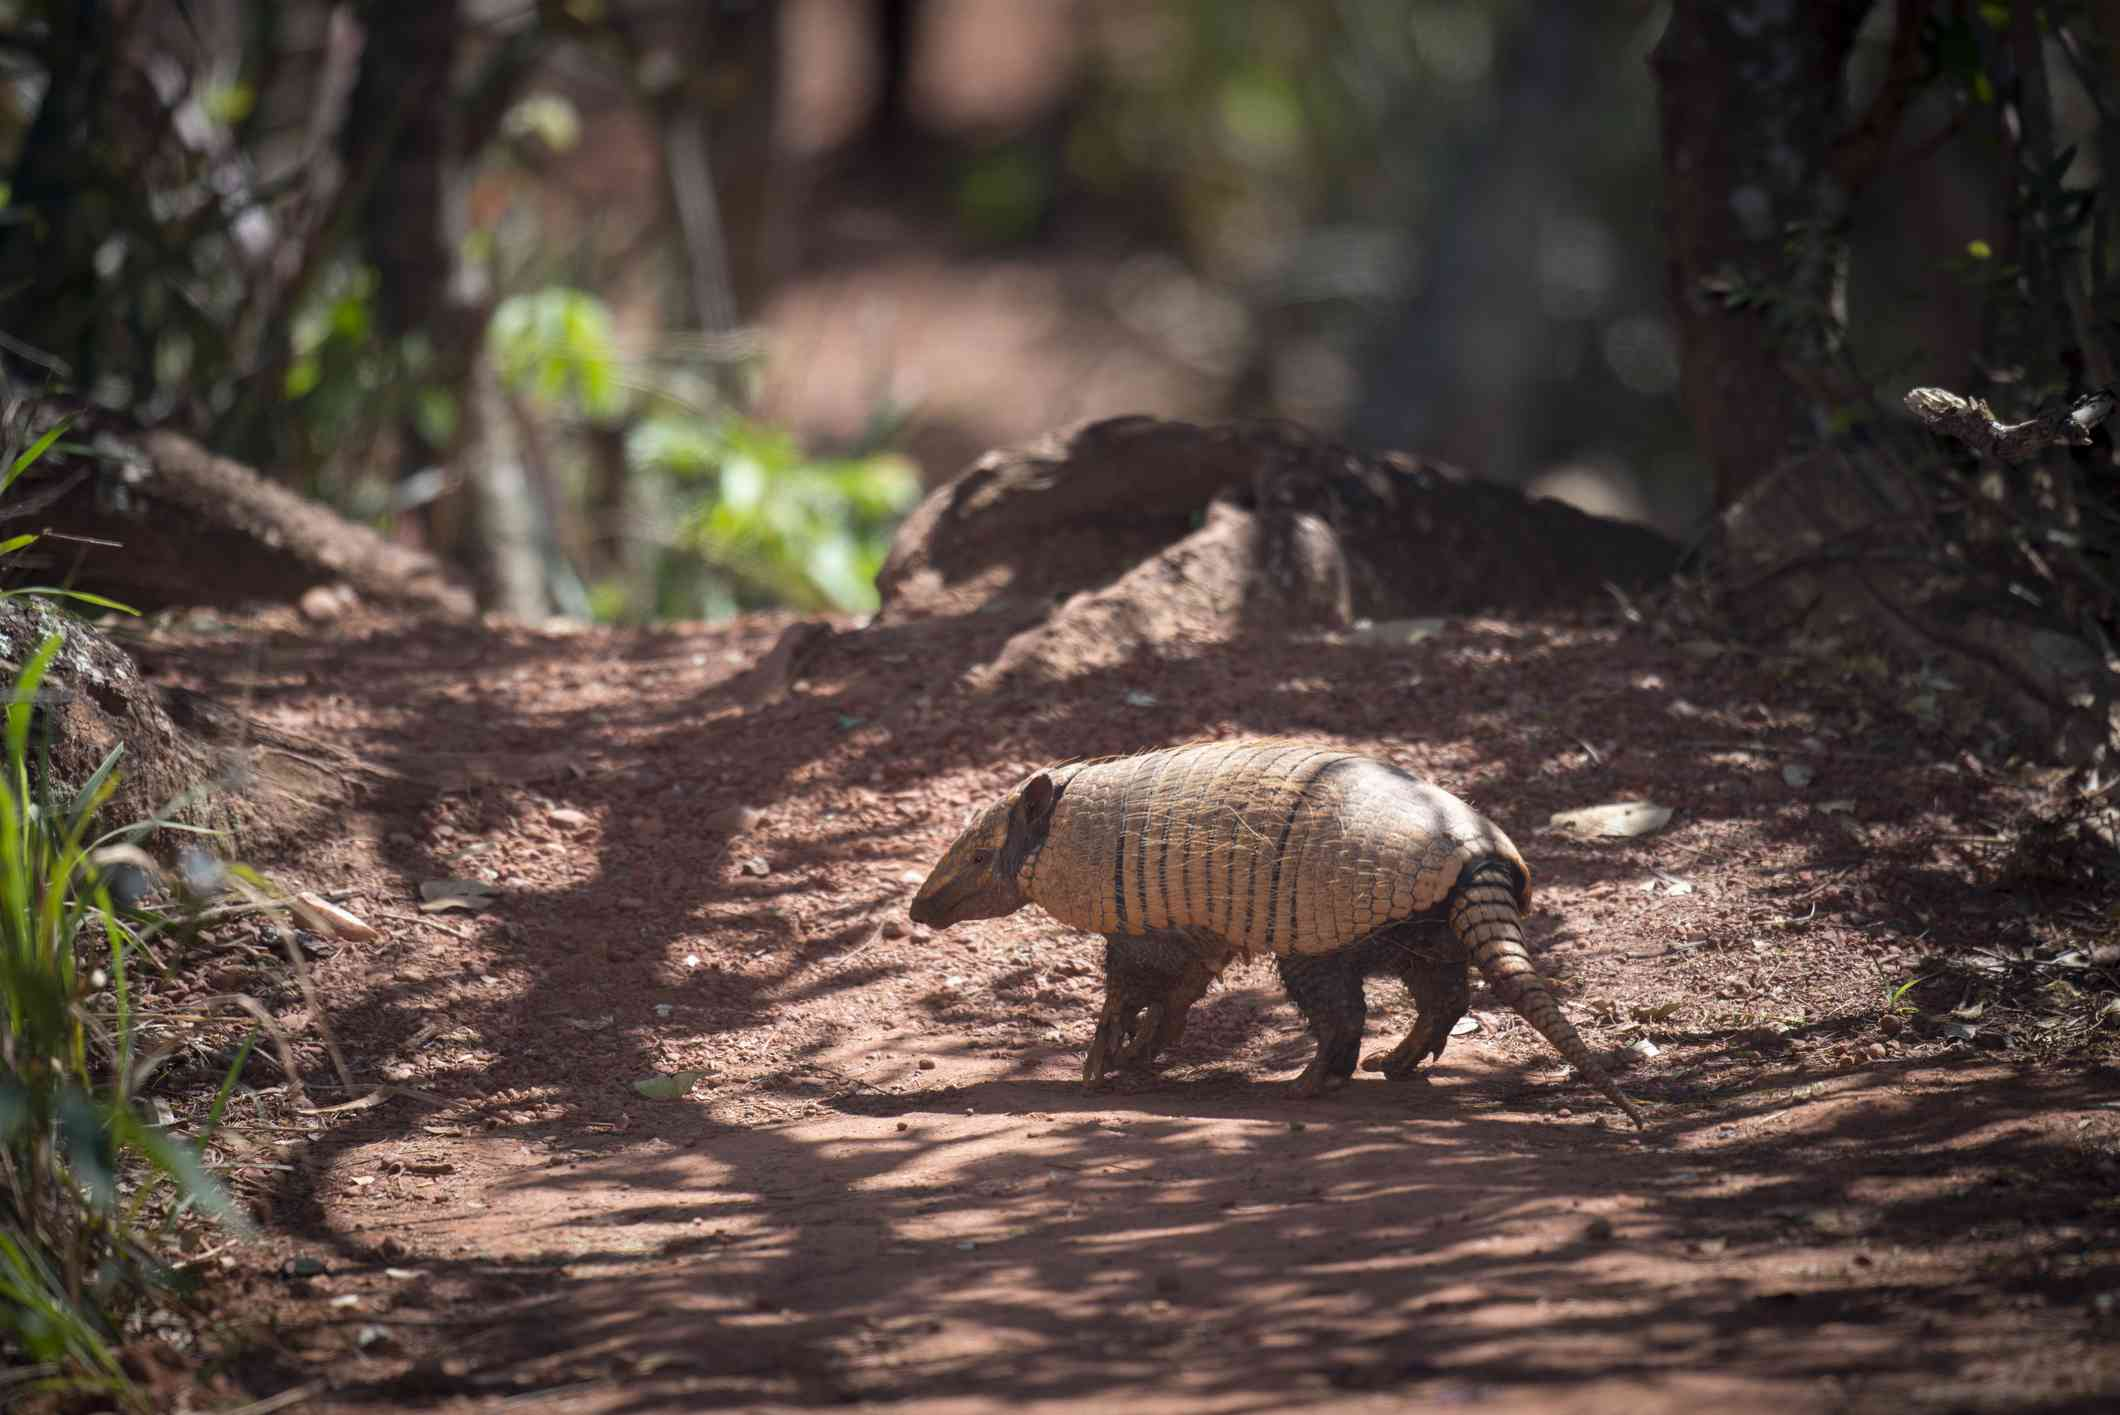 Brazilian three-banded armadillo with light brown shell on a wooded path in the Andes